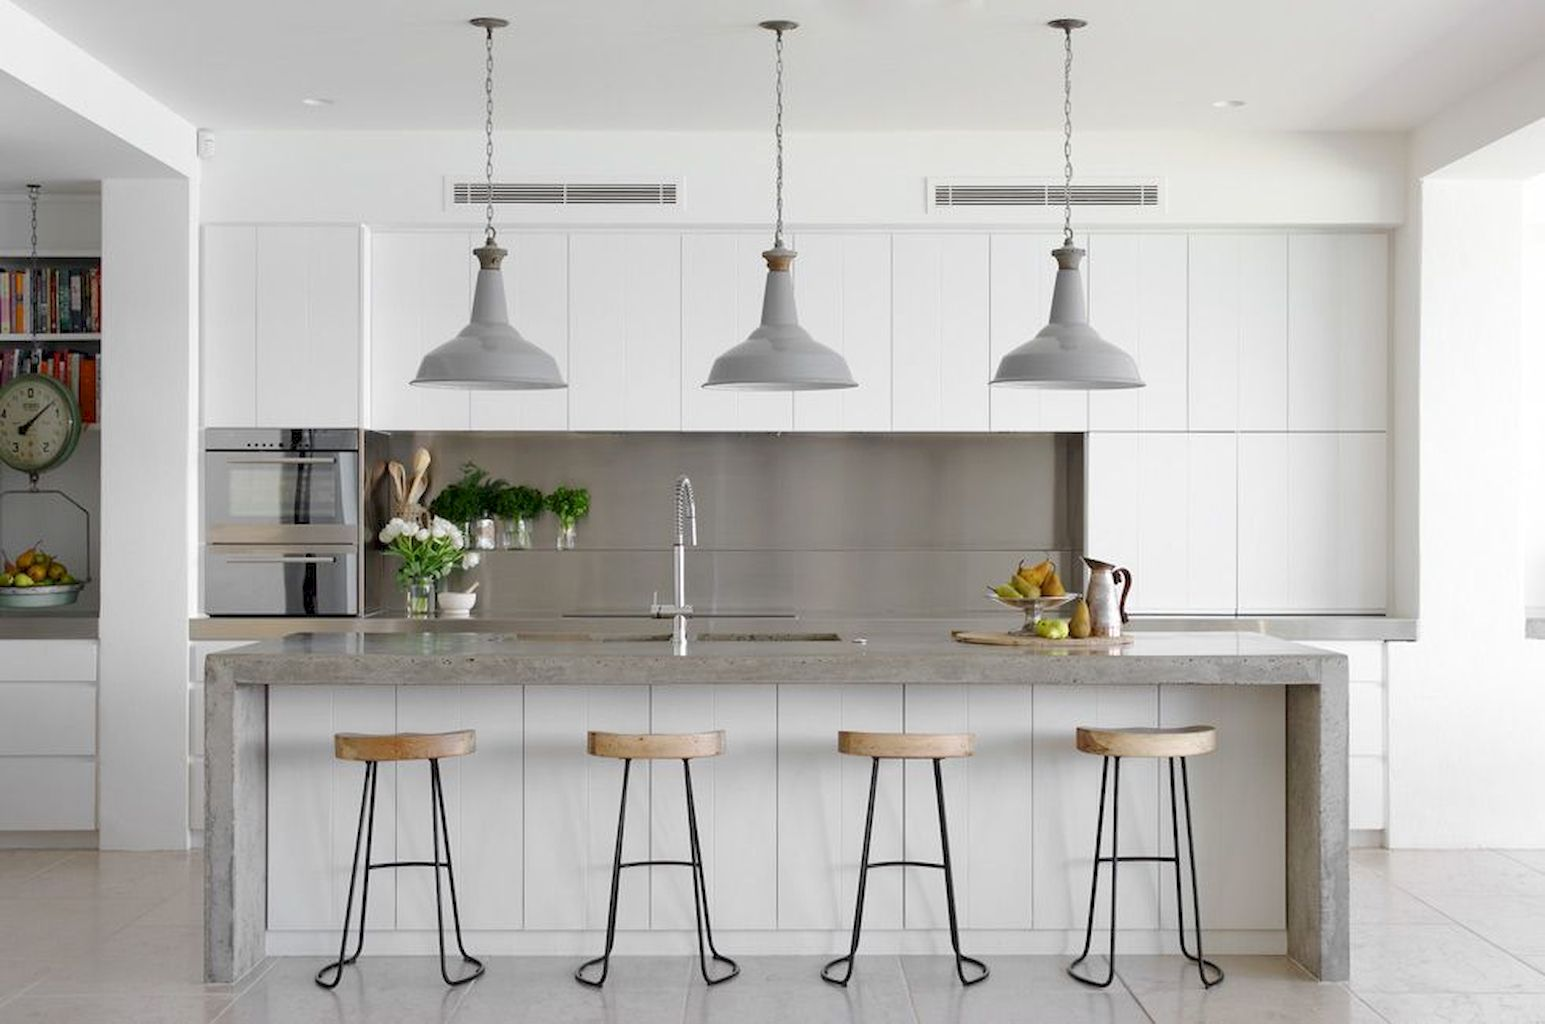 Decorative Kitchen Pendant Design with Modern and Classic Concept Part 13